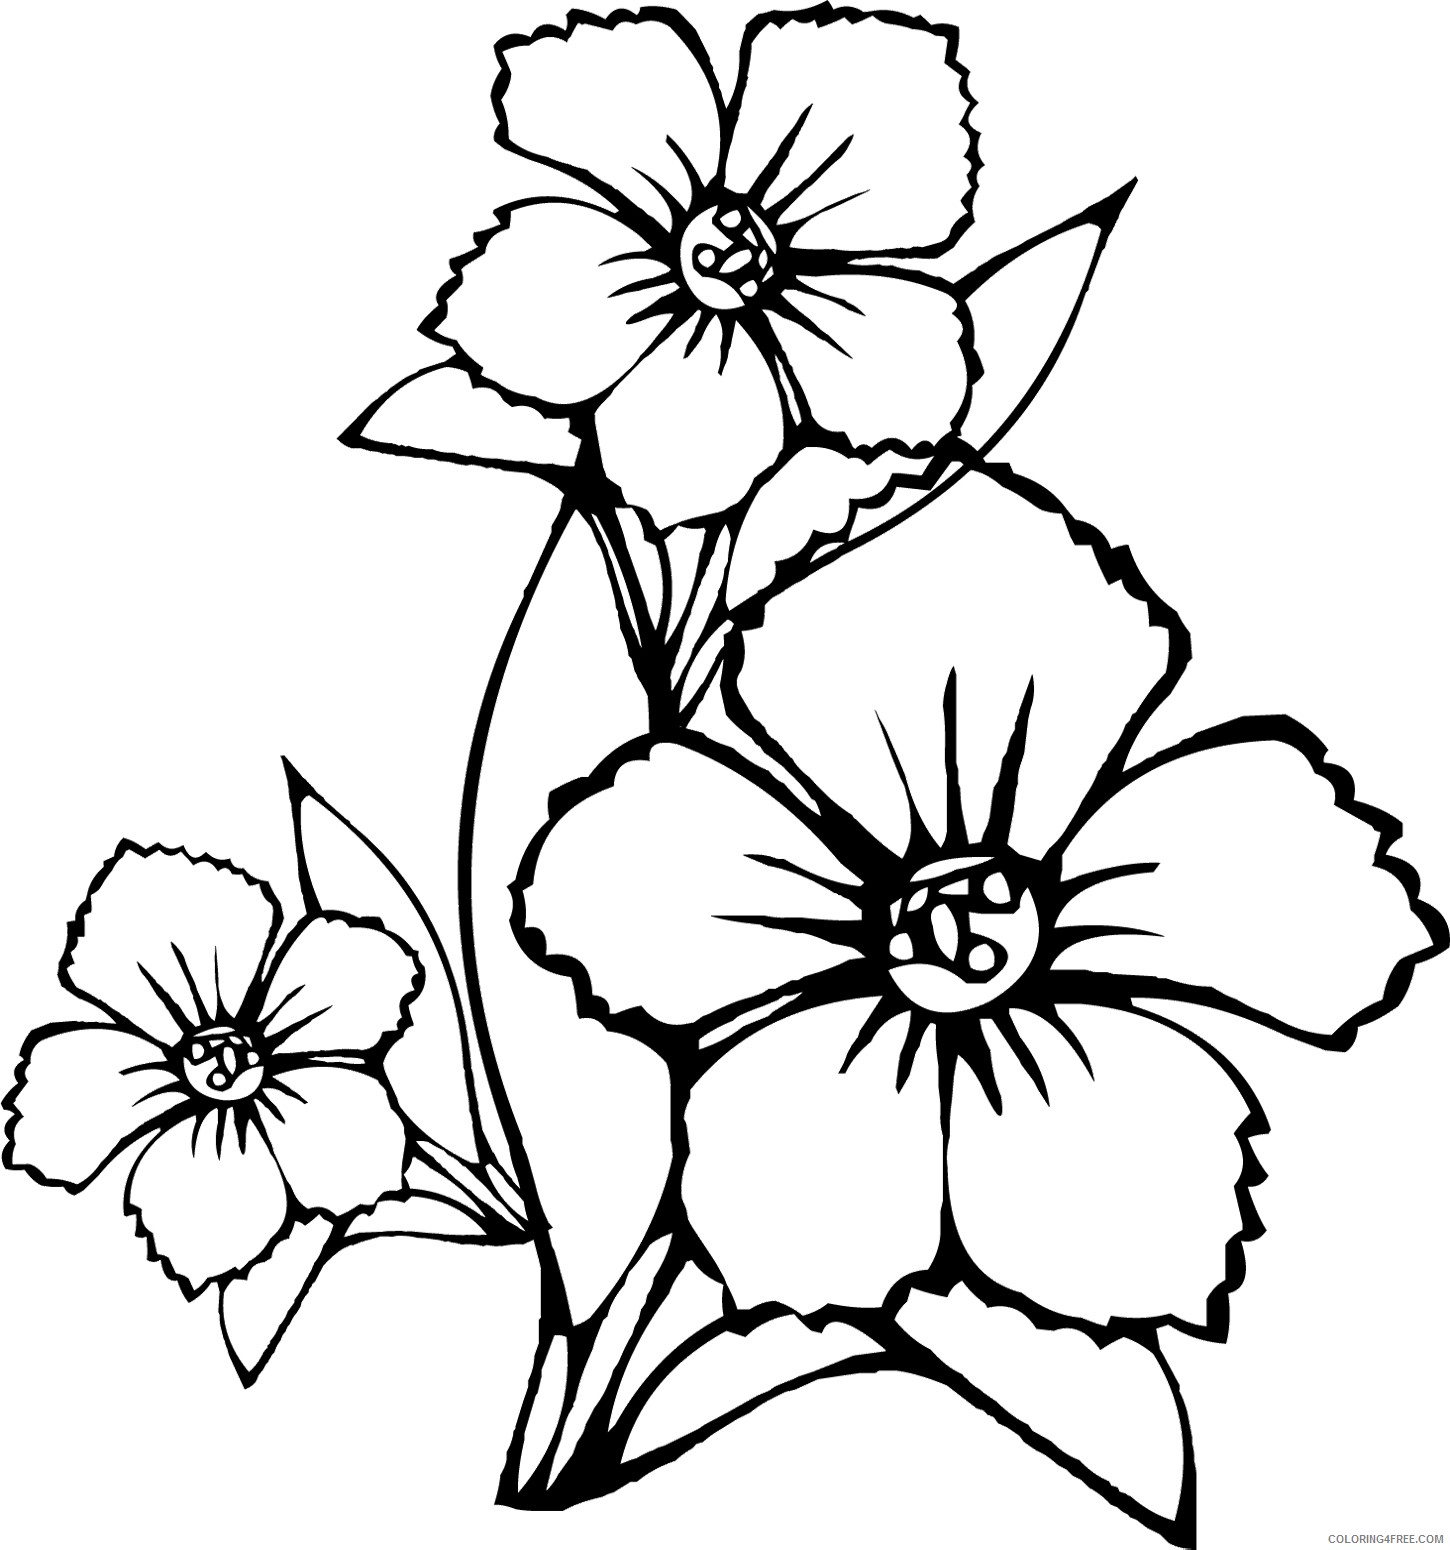 flower coloring pages free to print Coloring4free